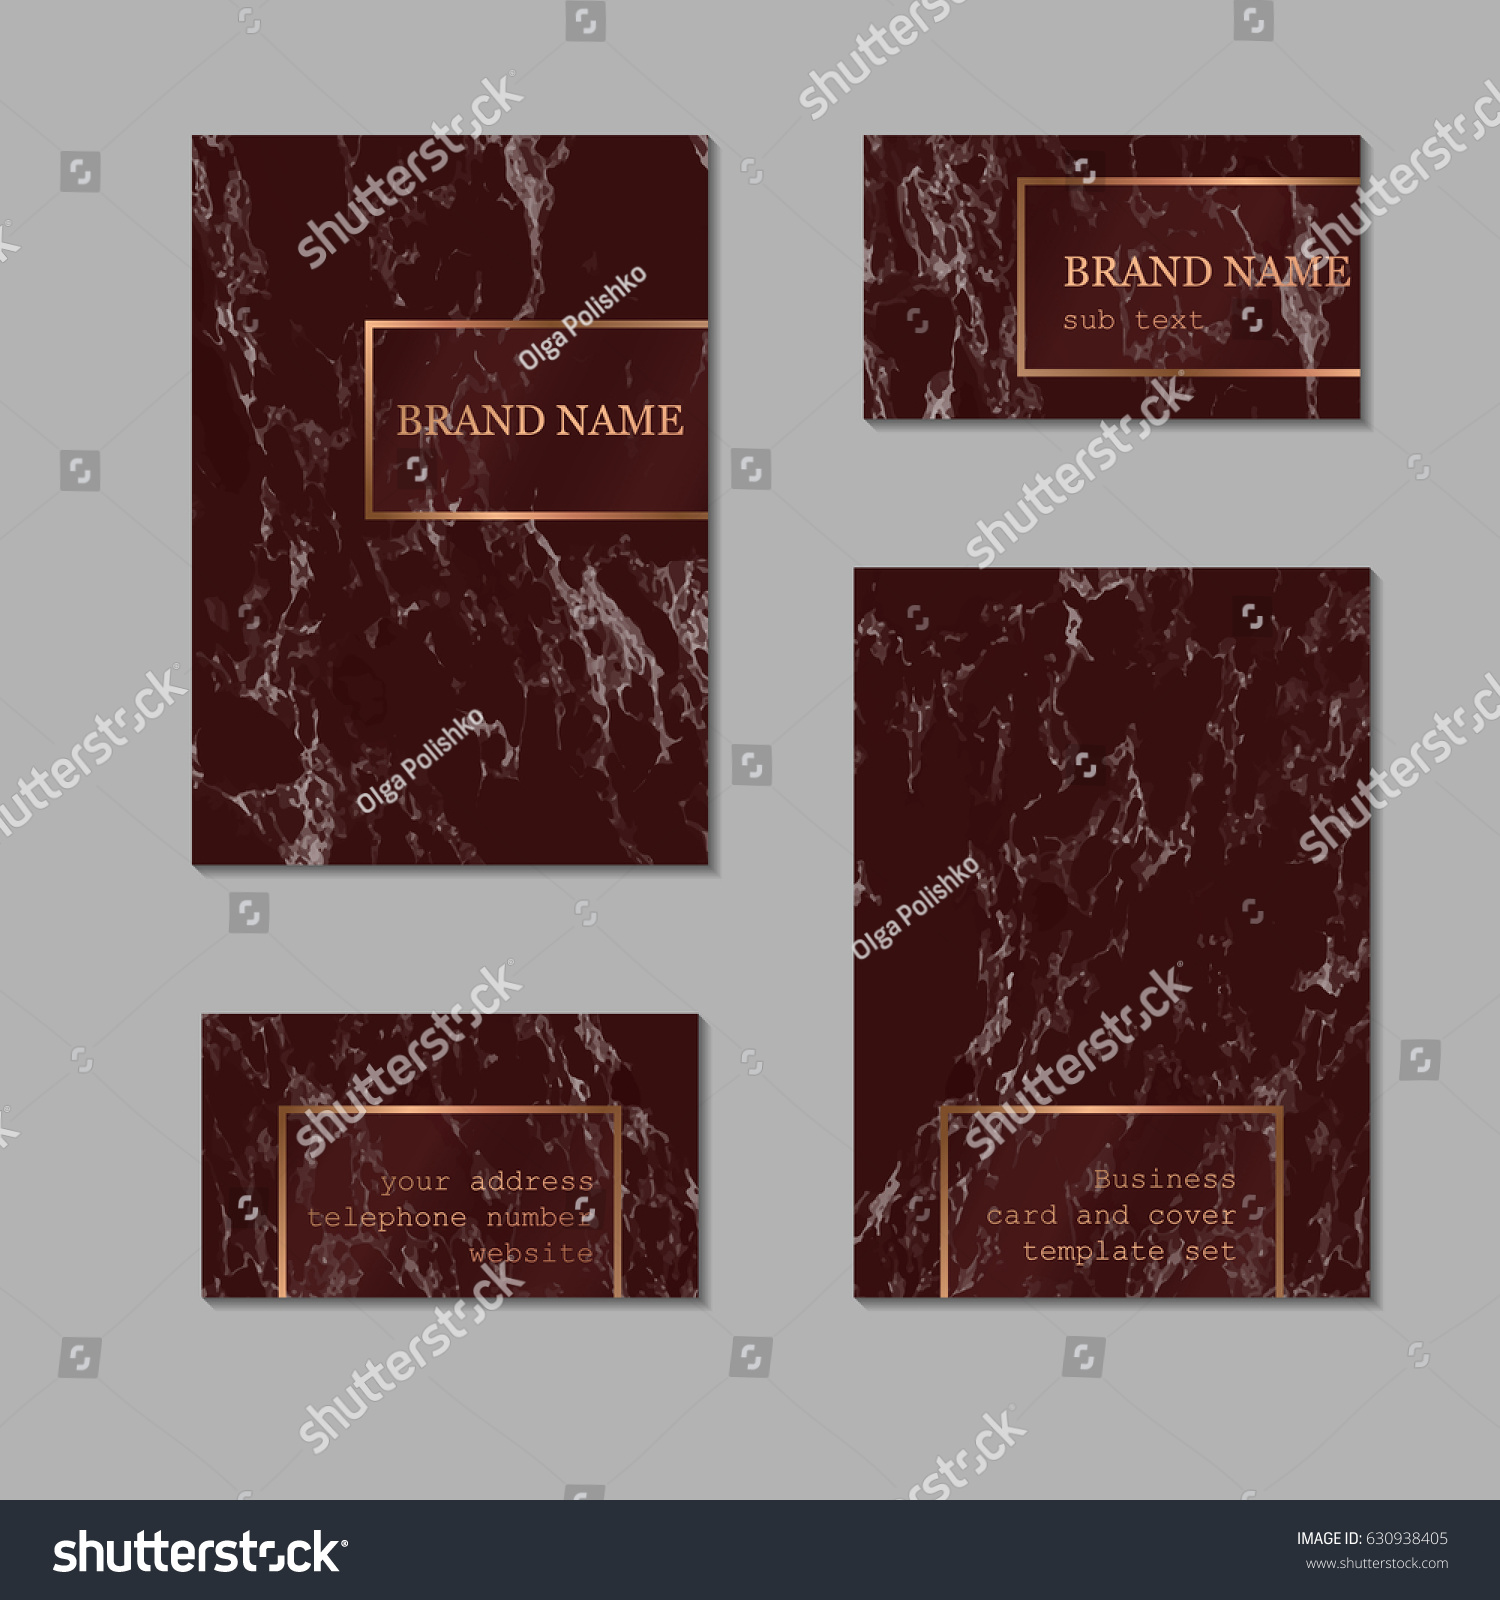 Business Card Cover Template Set Sophisticated Stock Vector ...